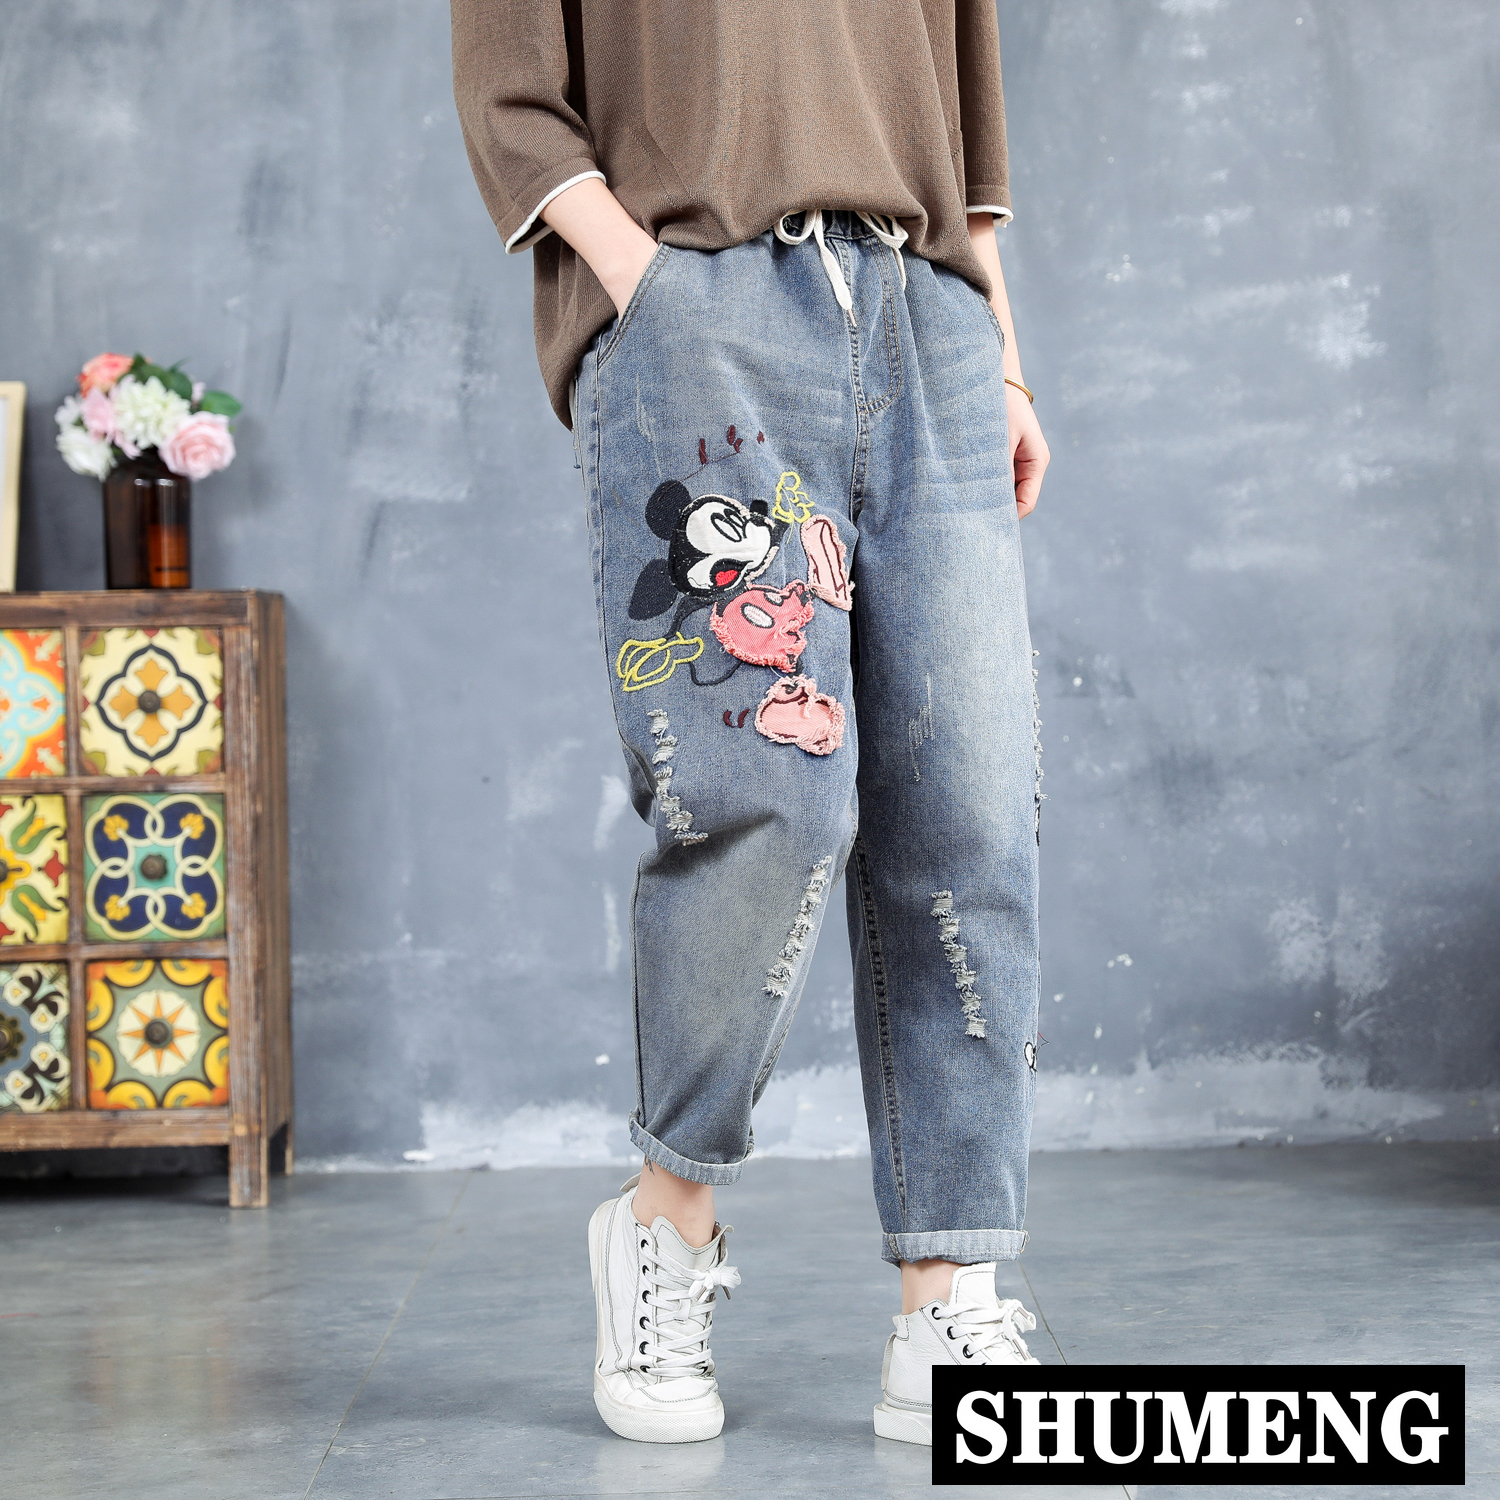 Spring New 2020 Loose Jeans Cute Cartoon Embroidered Baggy Jeans Pants Female Plus Size Hole Ripped Denim Harem Pants